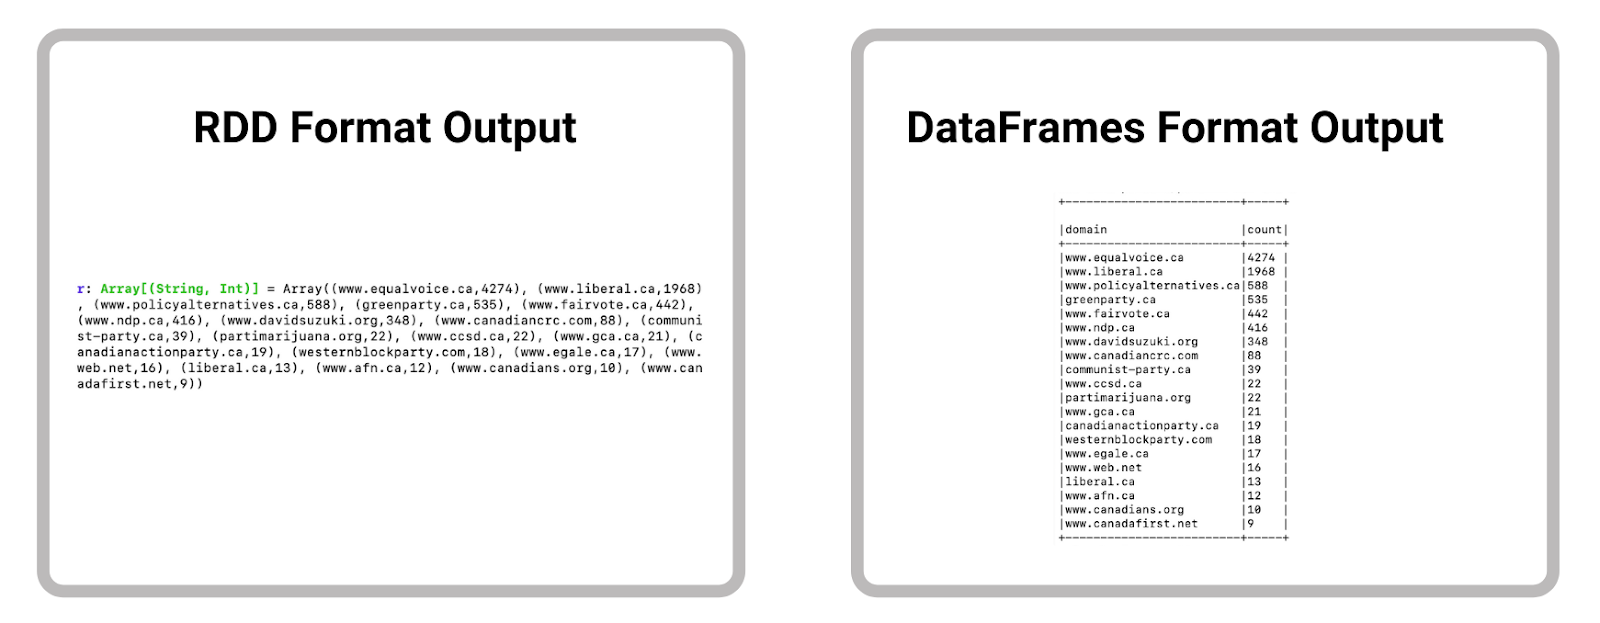 Comparison between RDD and DataFrame outputs